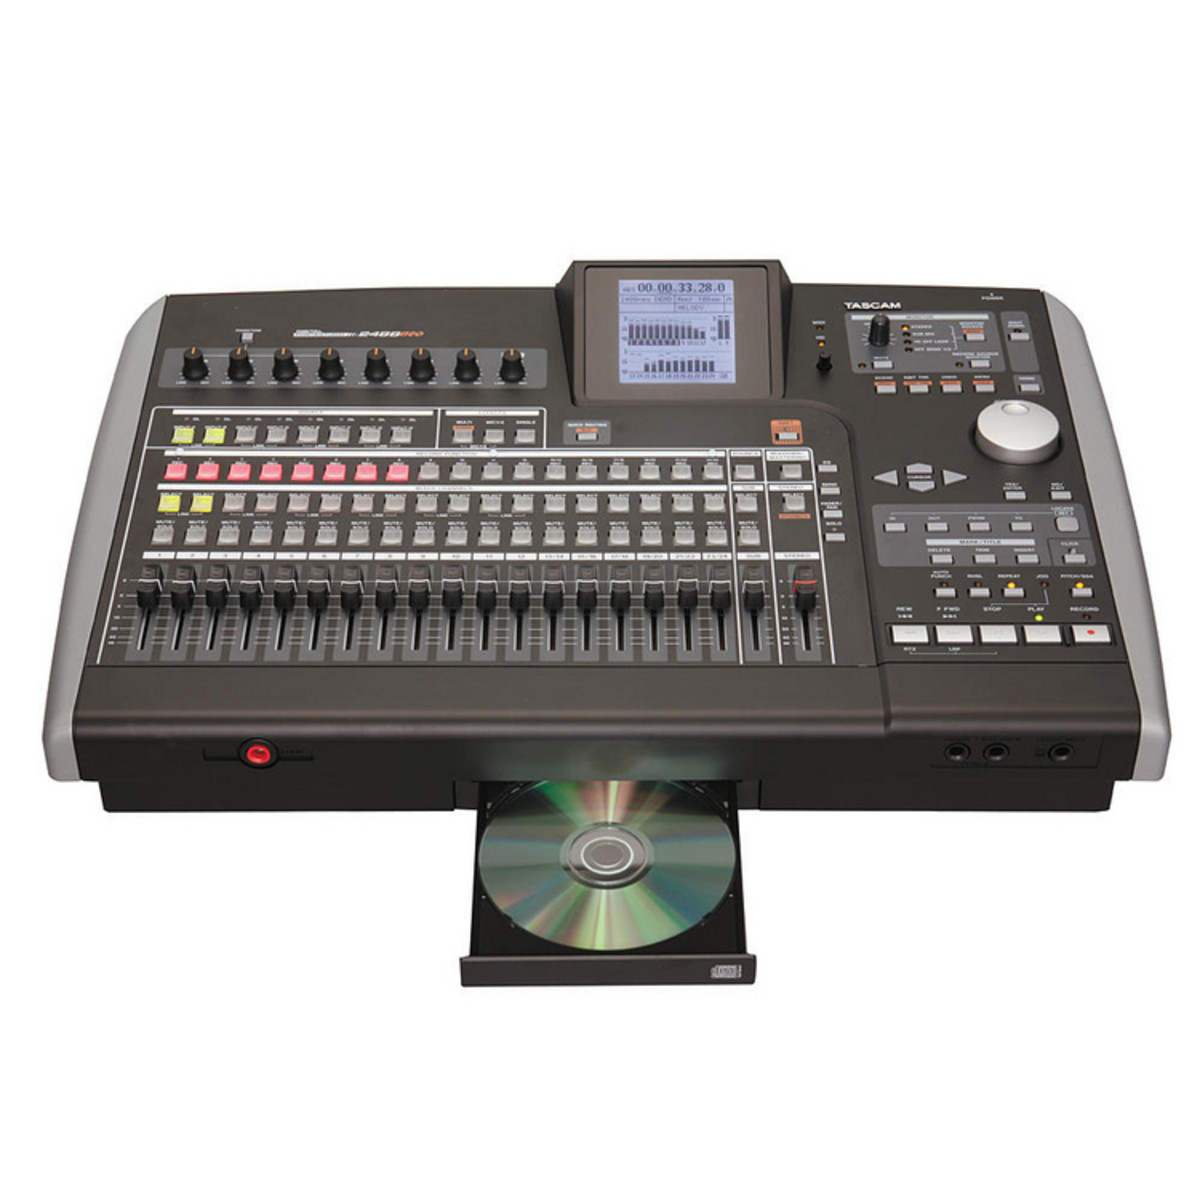 disc tascam 2488 neo digital portastudio at gear4music com rh gear4music com tascam 2488 mkii user manual Tascam 2488 Tutorial